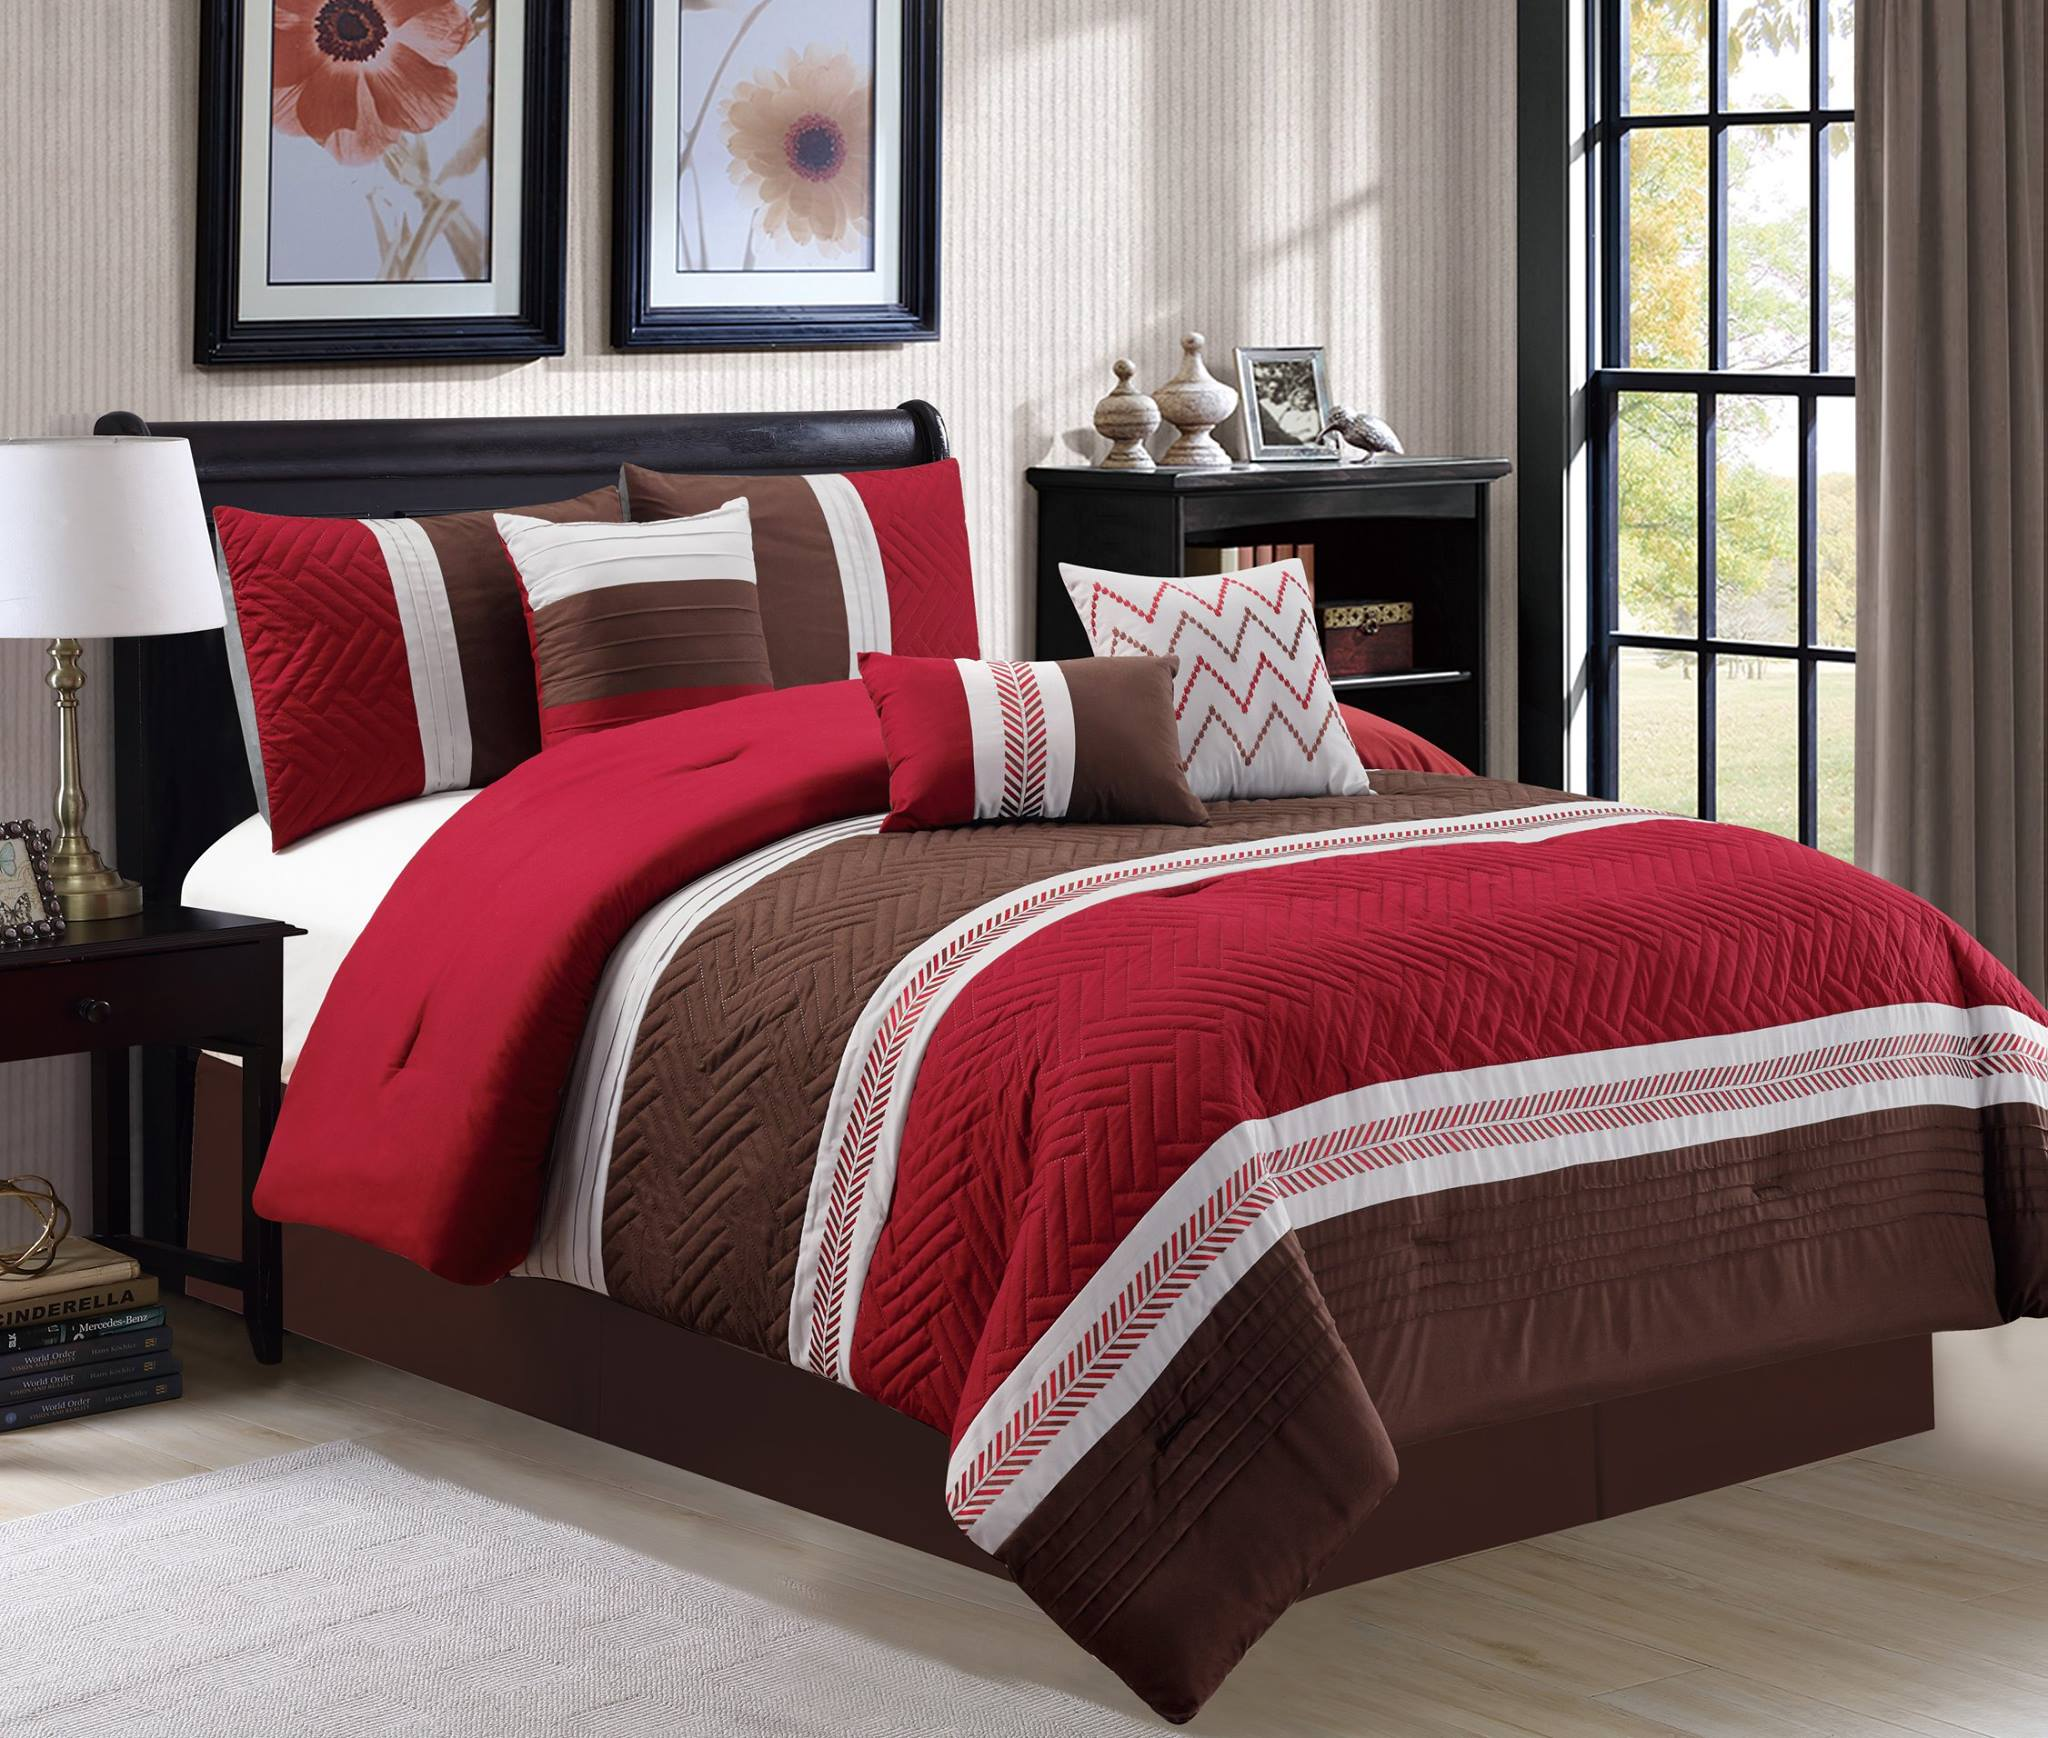 Luxury Embossed 7 Piece Comforter Set Burgundy Brown White Embroidery Details